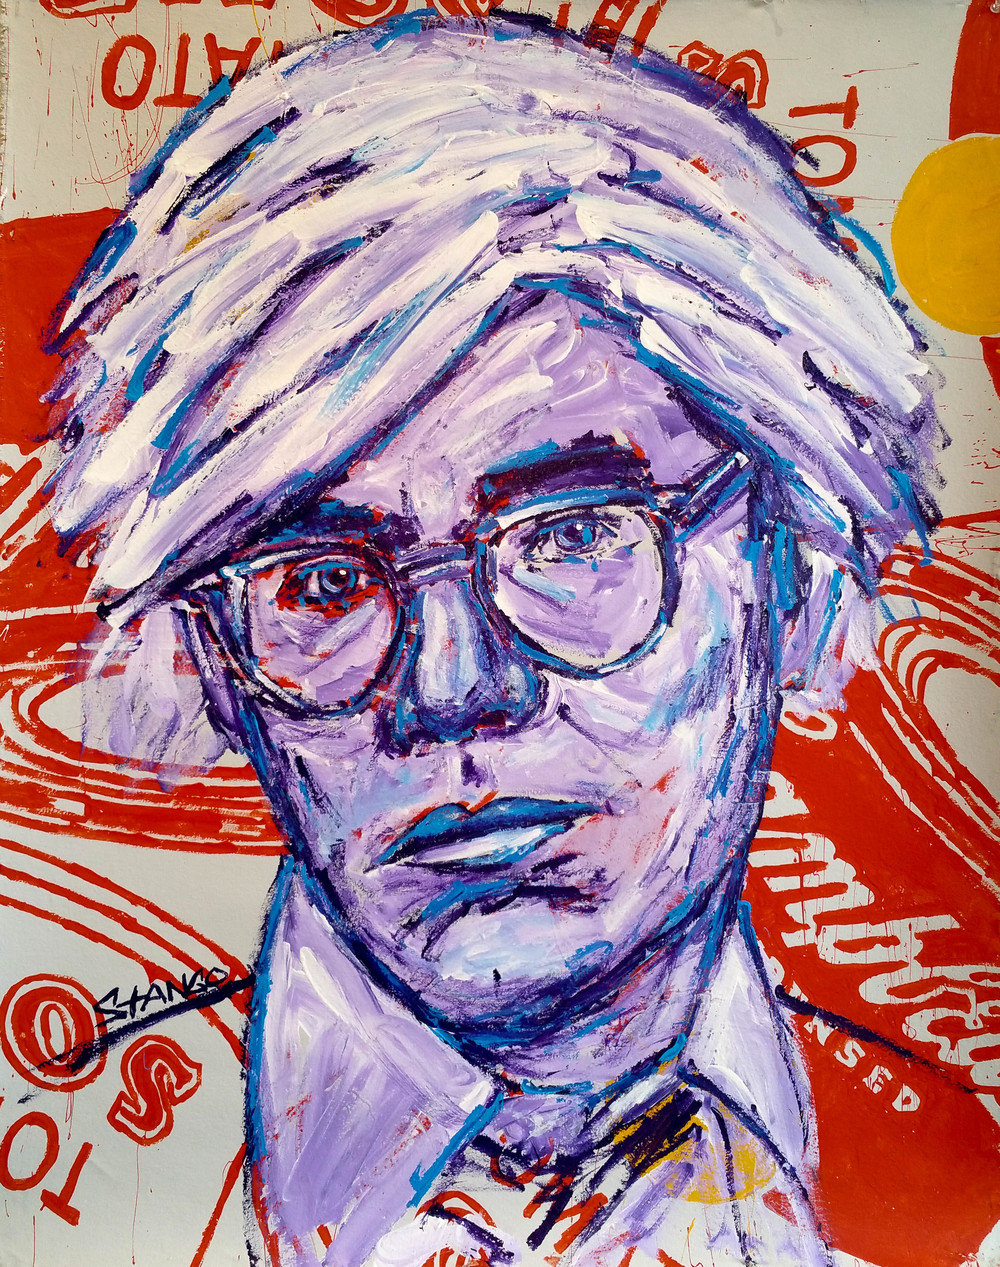 Andy Warhol on Soup • 40 X 30 • Acrylic on Canvas